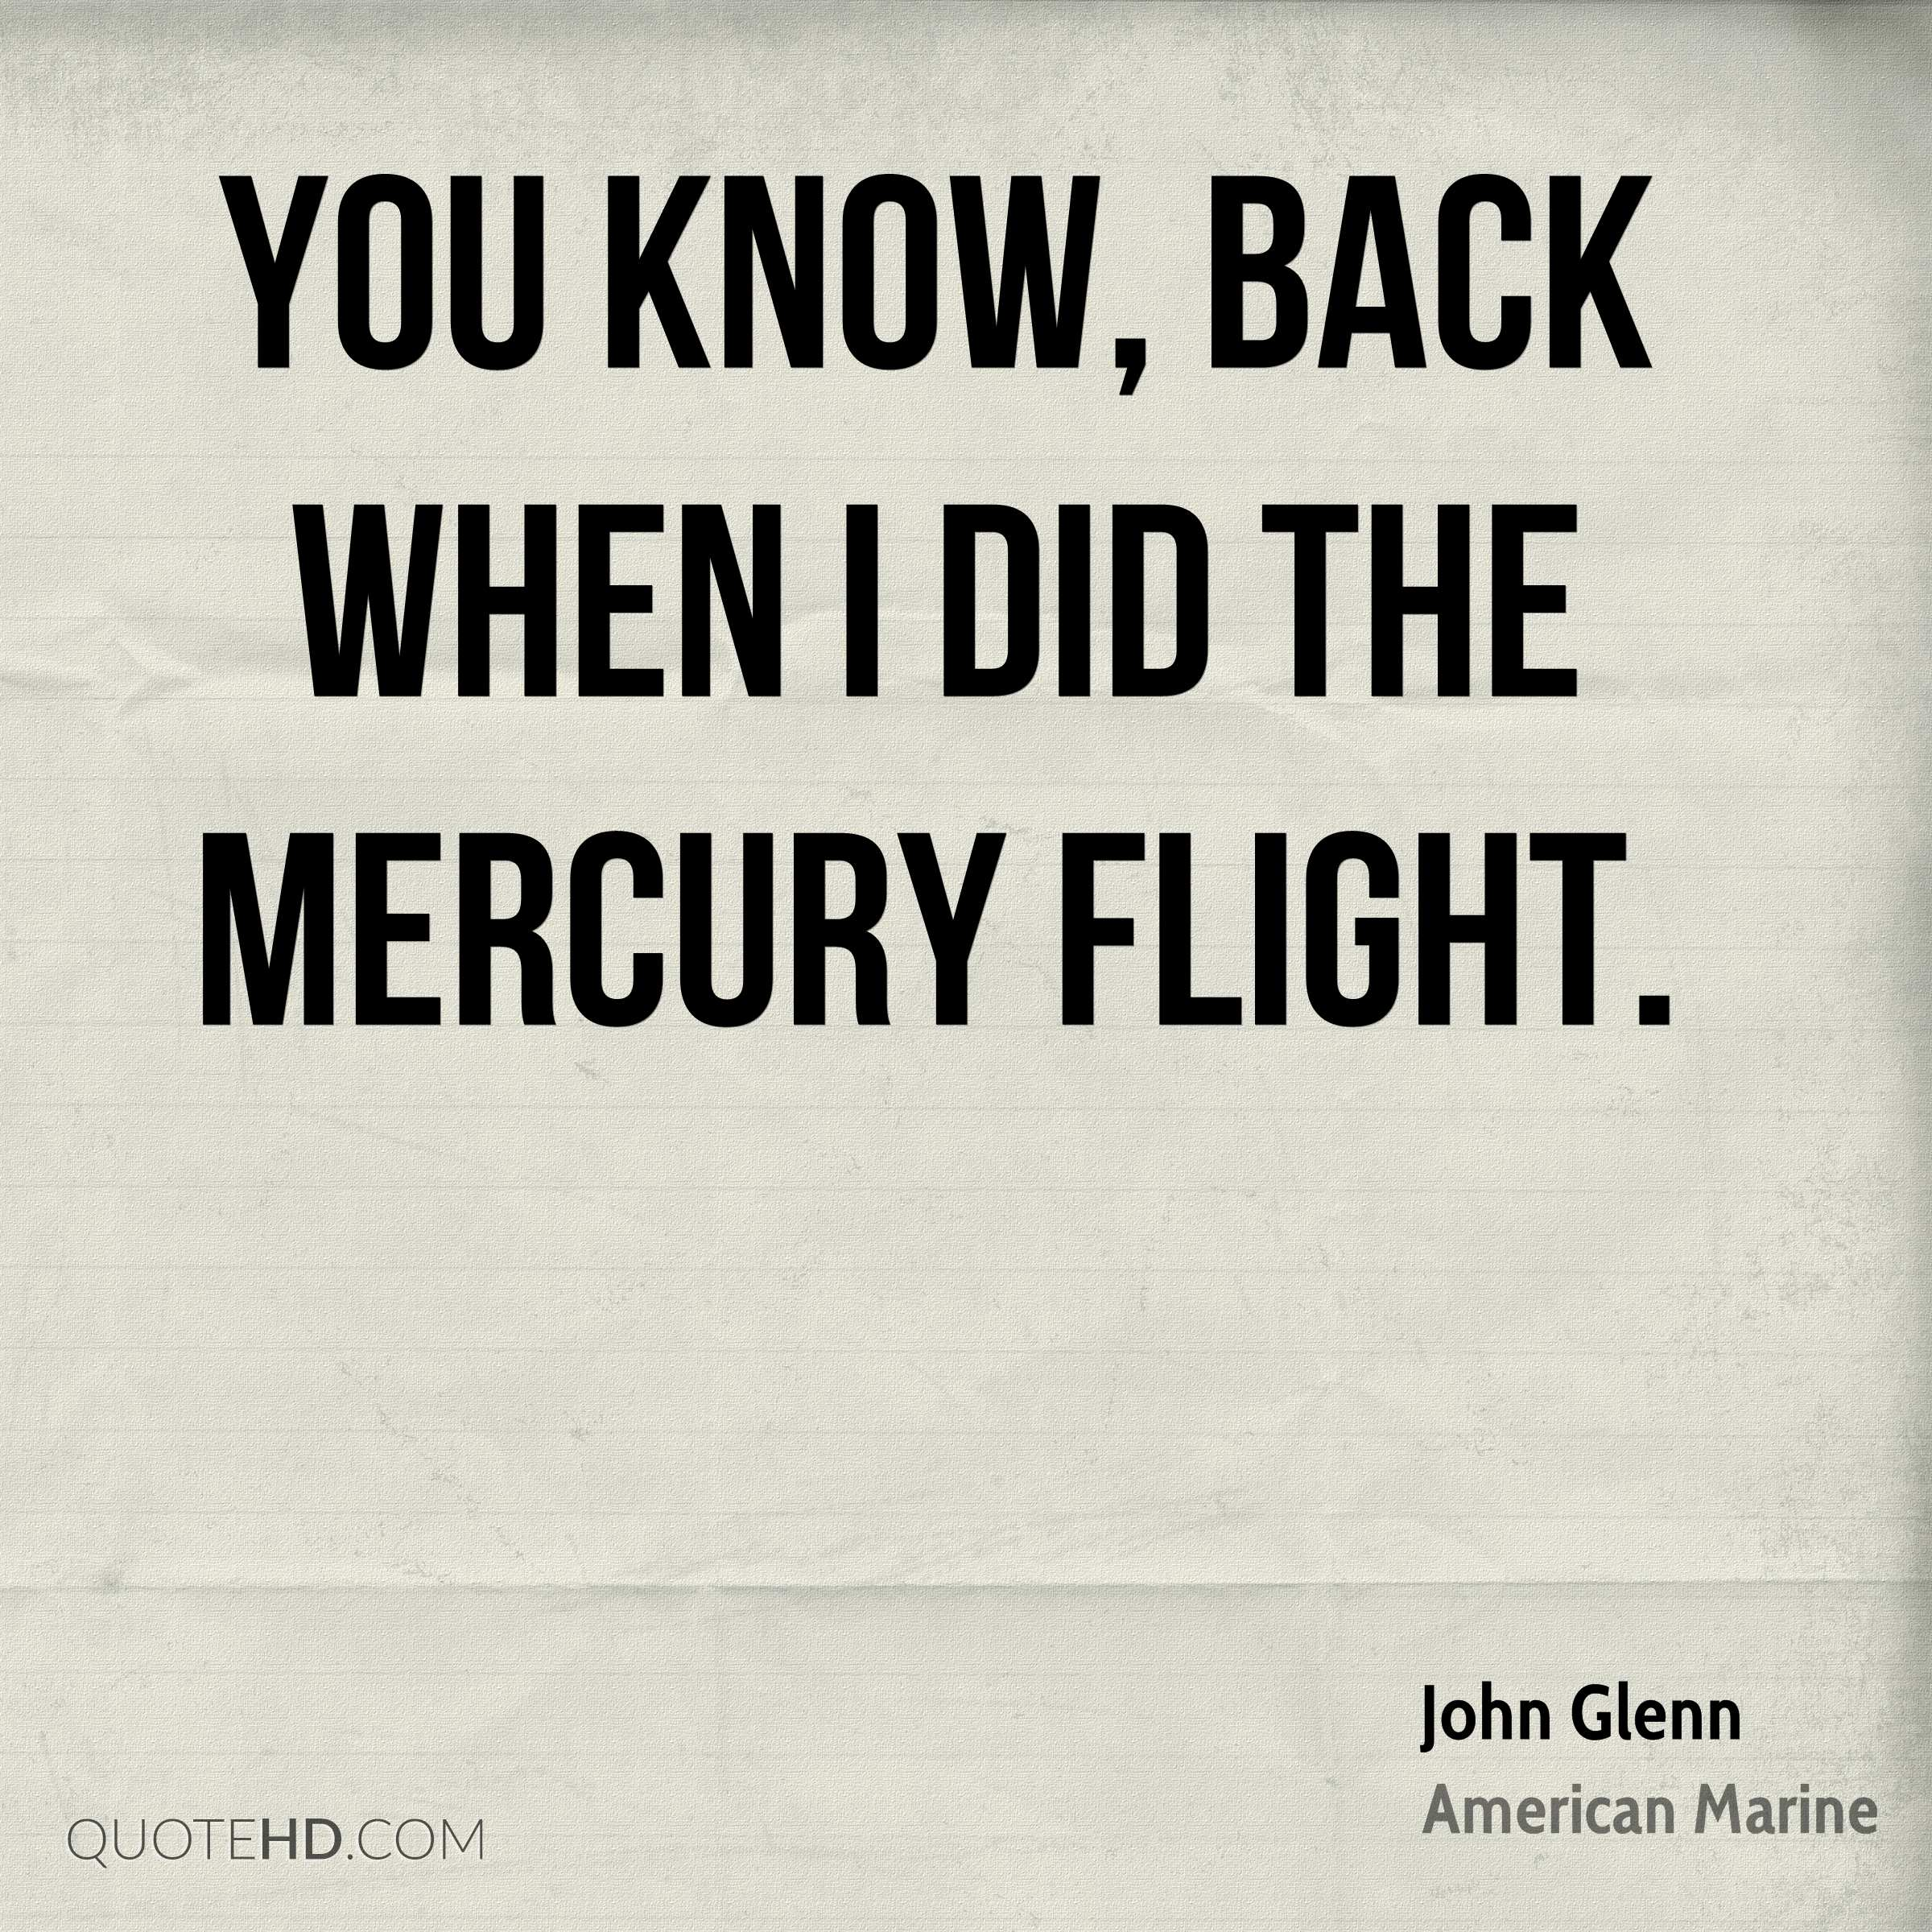 You know, back when I did the Mercury flight.